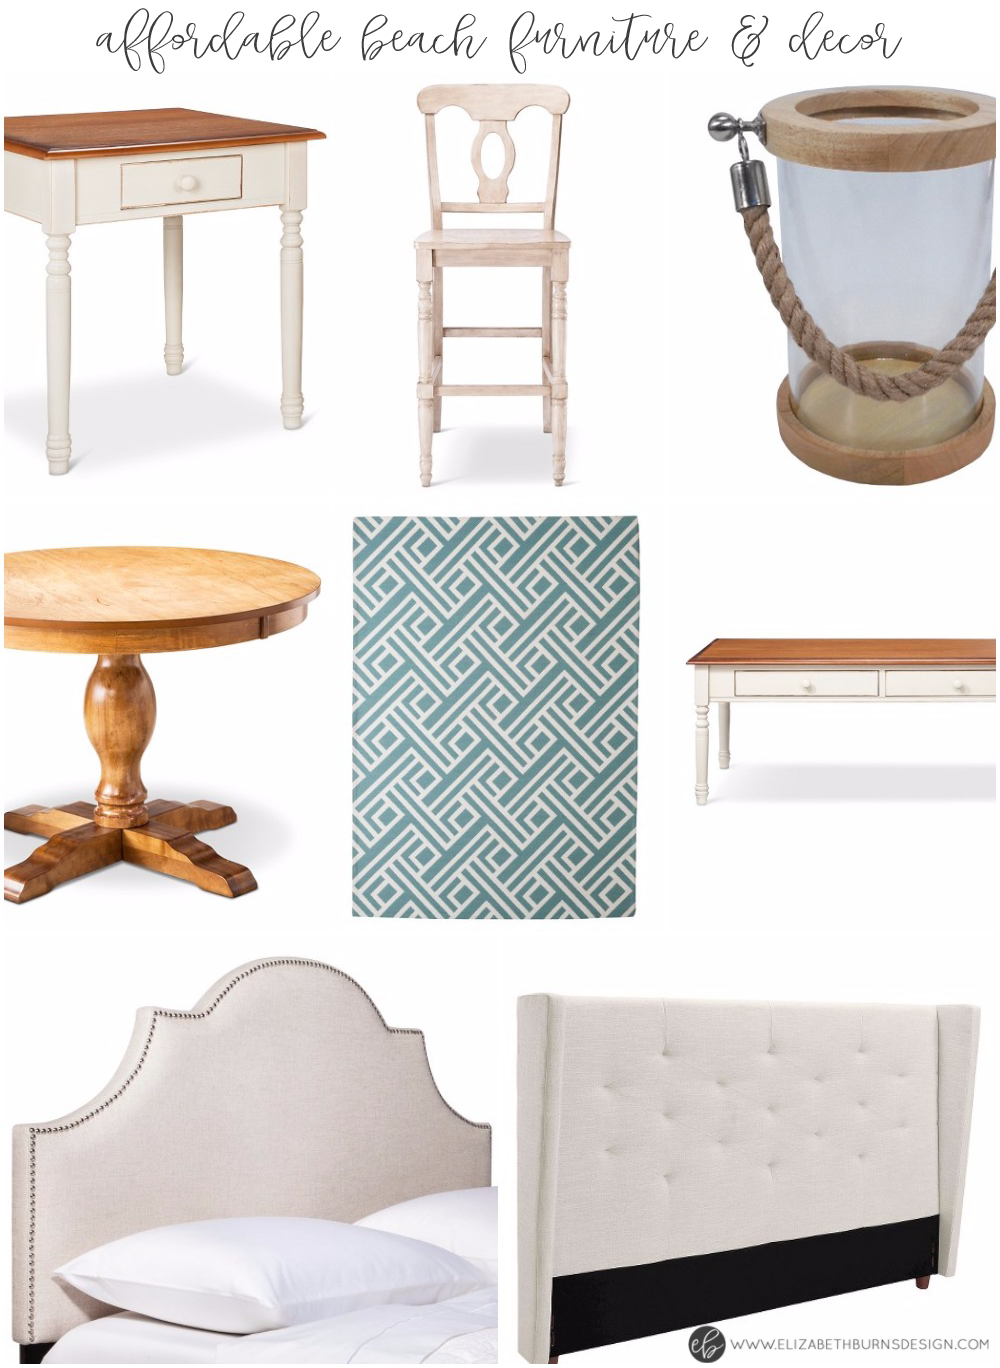 Elizabeth Burns Design | Affordable Beach Inspired Furniture and Decor - Target Clearance